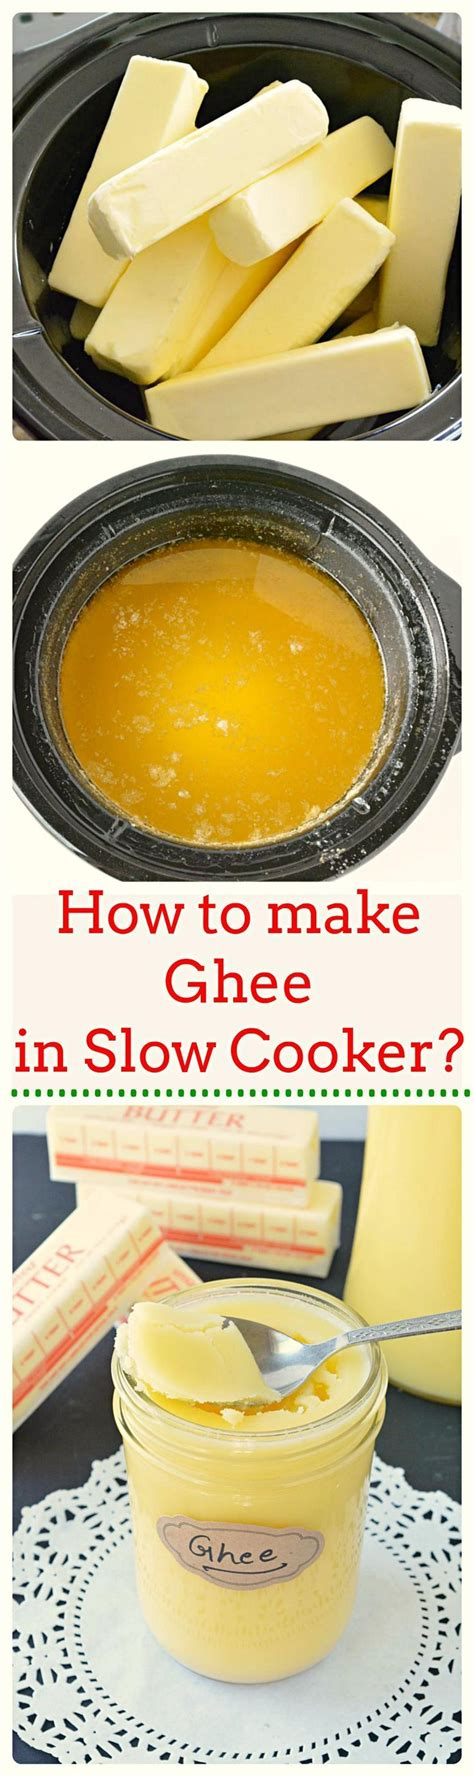 How To Make Ghee In Slow Cooker  Recipe  Homemade. Which Credit Report Is Most Used. Microsoft Dynamics Email Marketing. How Much Is Medical Malpractice Insurance. Grand Canyon University Edu Donate Your Car. Rosen College Apartments Jail For Tax Evasion. Salem Christian School Same Day Instant Loans. Top Psychology Graduate Programs. How Much Do Cardiovascular Surgeons Make